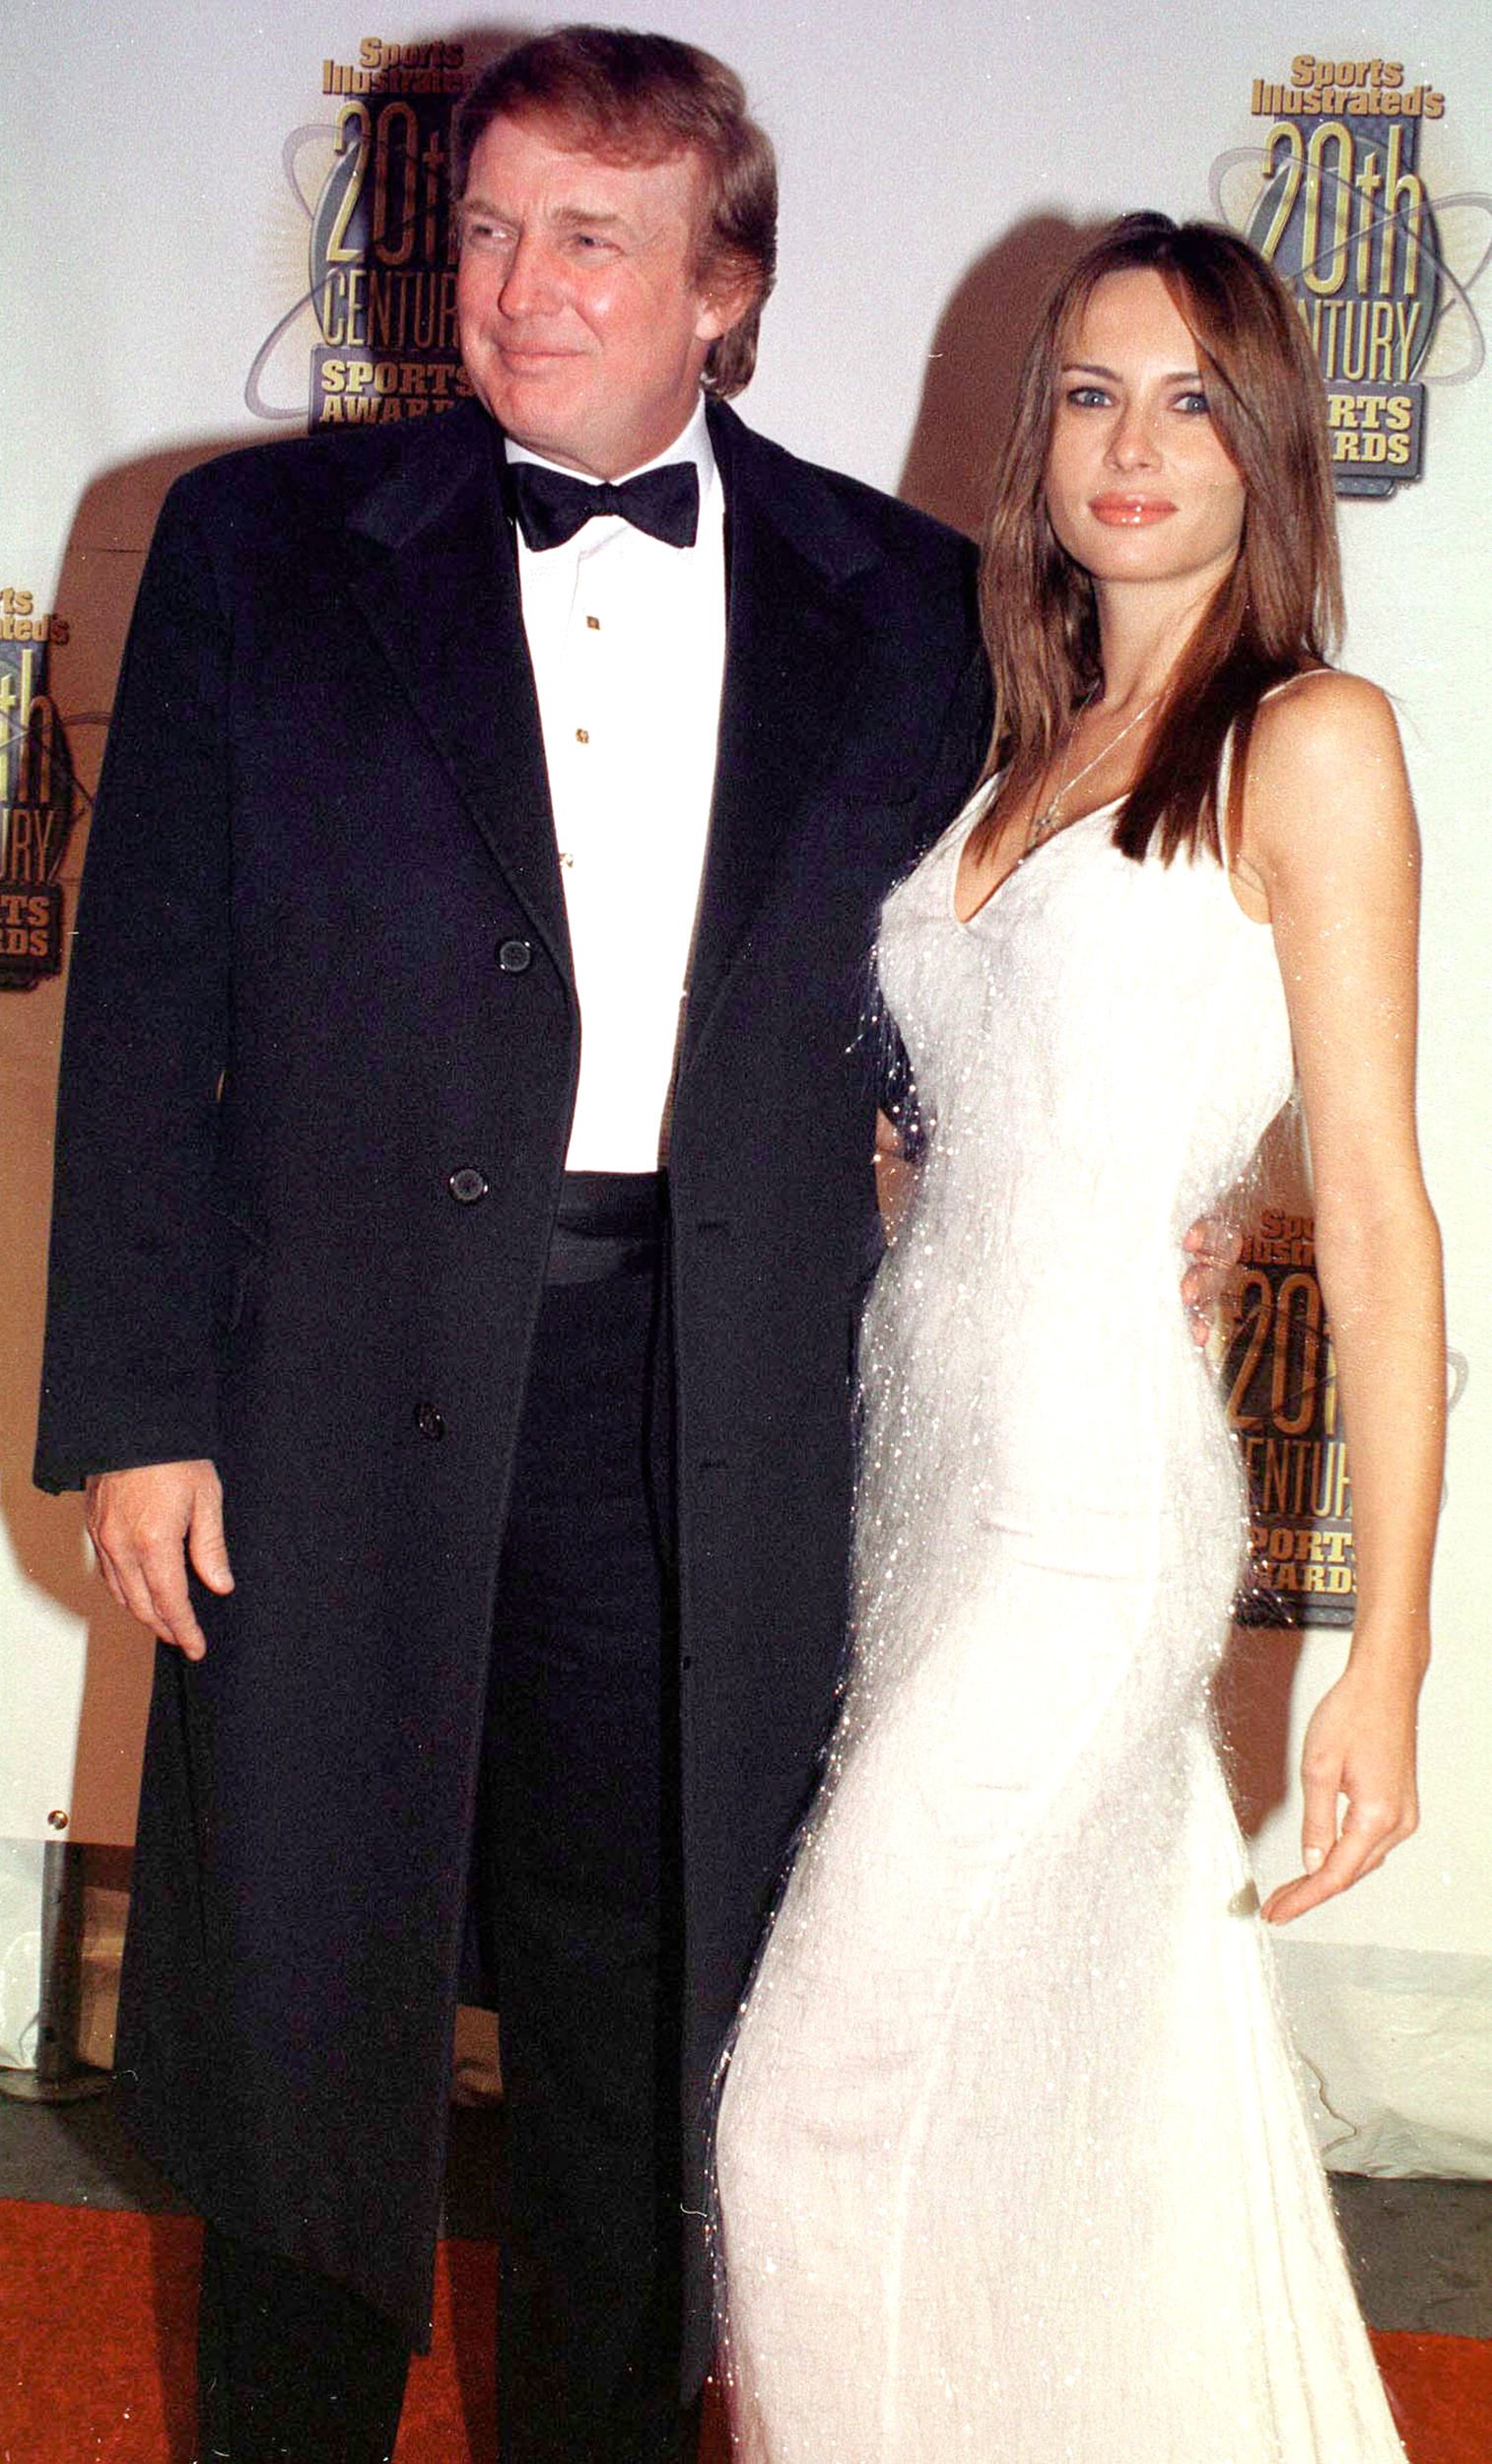 Trump And Melania Wedding.Melania Trump S Fashion Evolution From Model To First Lady